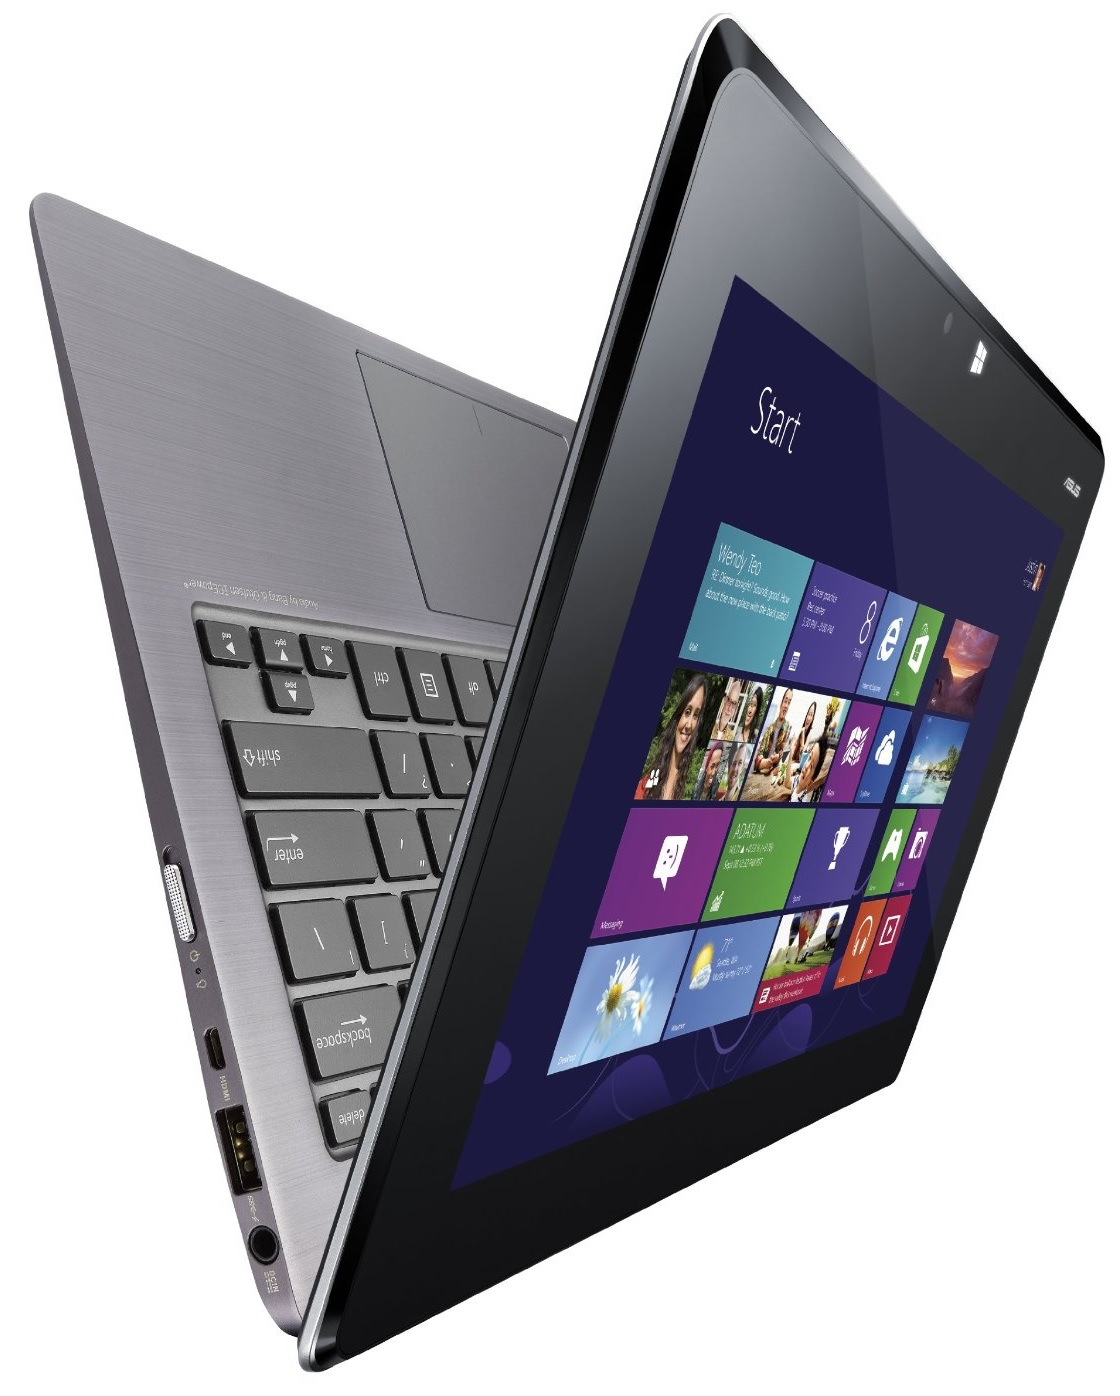 Asus Touchscreen Laptop Best Touchscreen Laptops